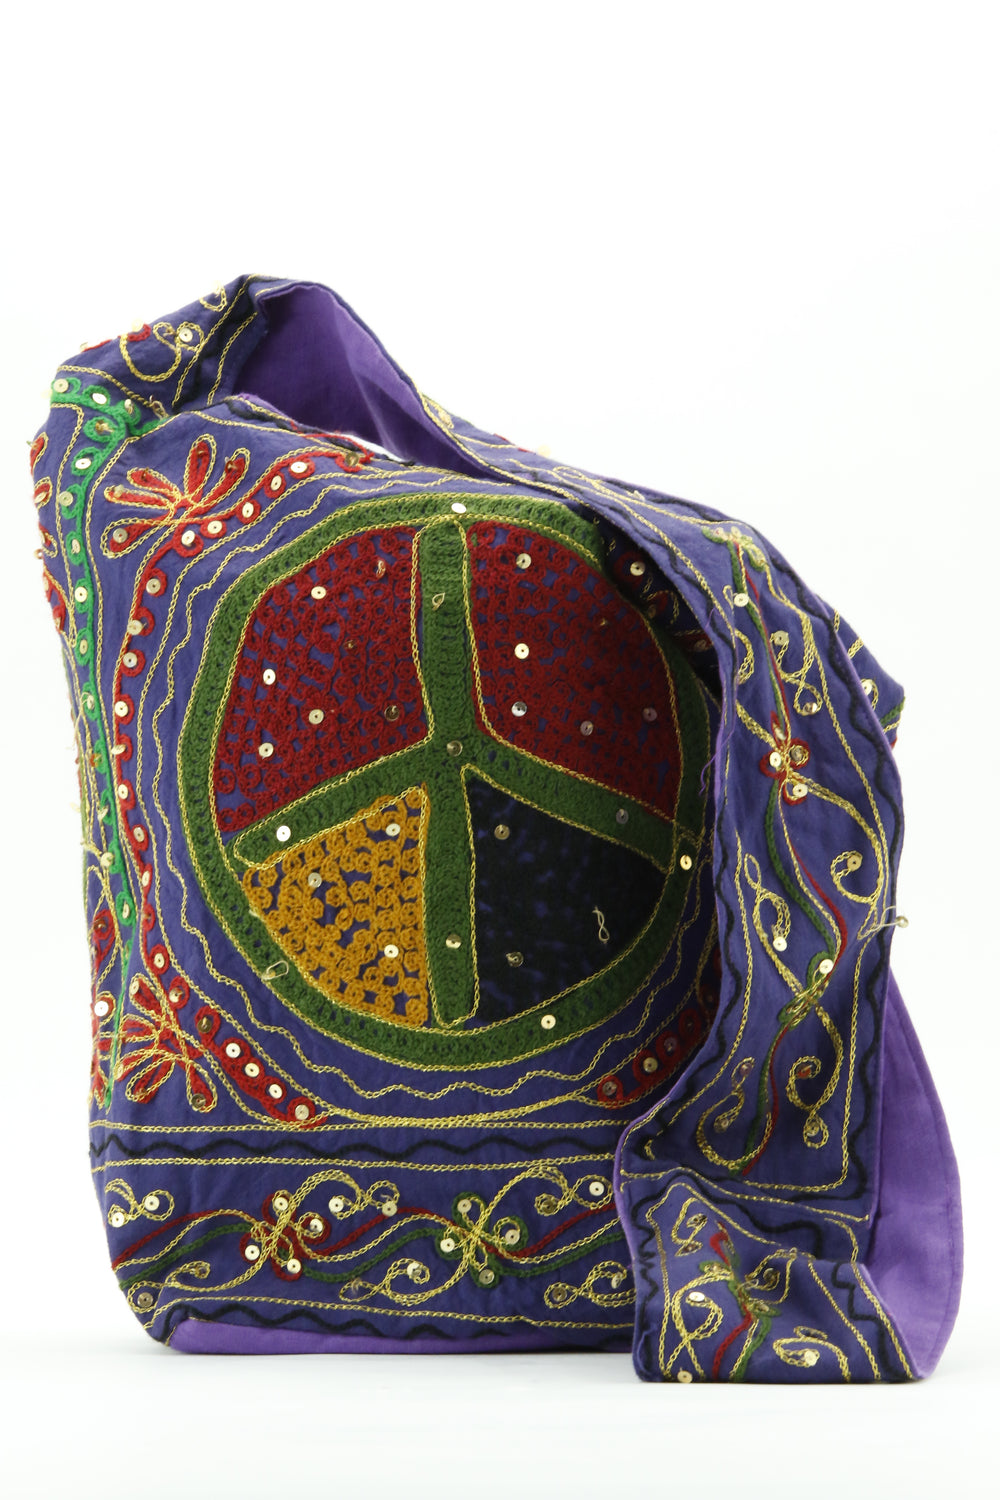 PEACE SIGN SEQUINED BAG PURPLE